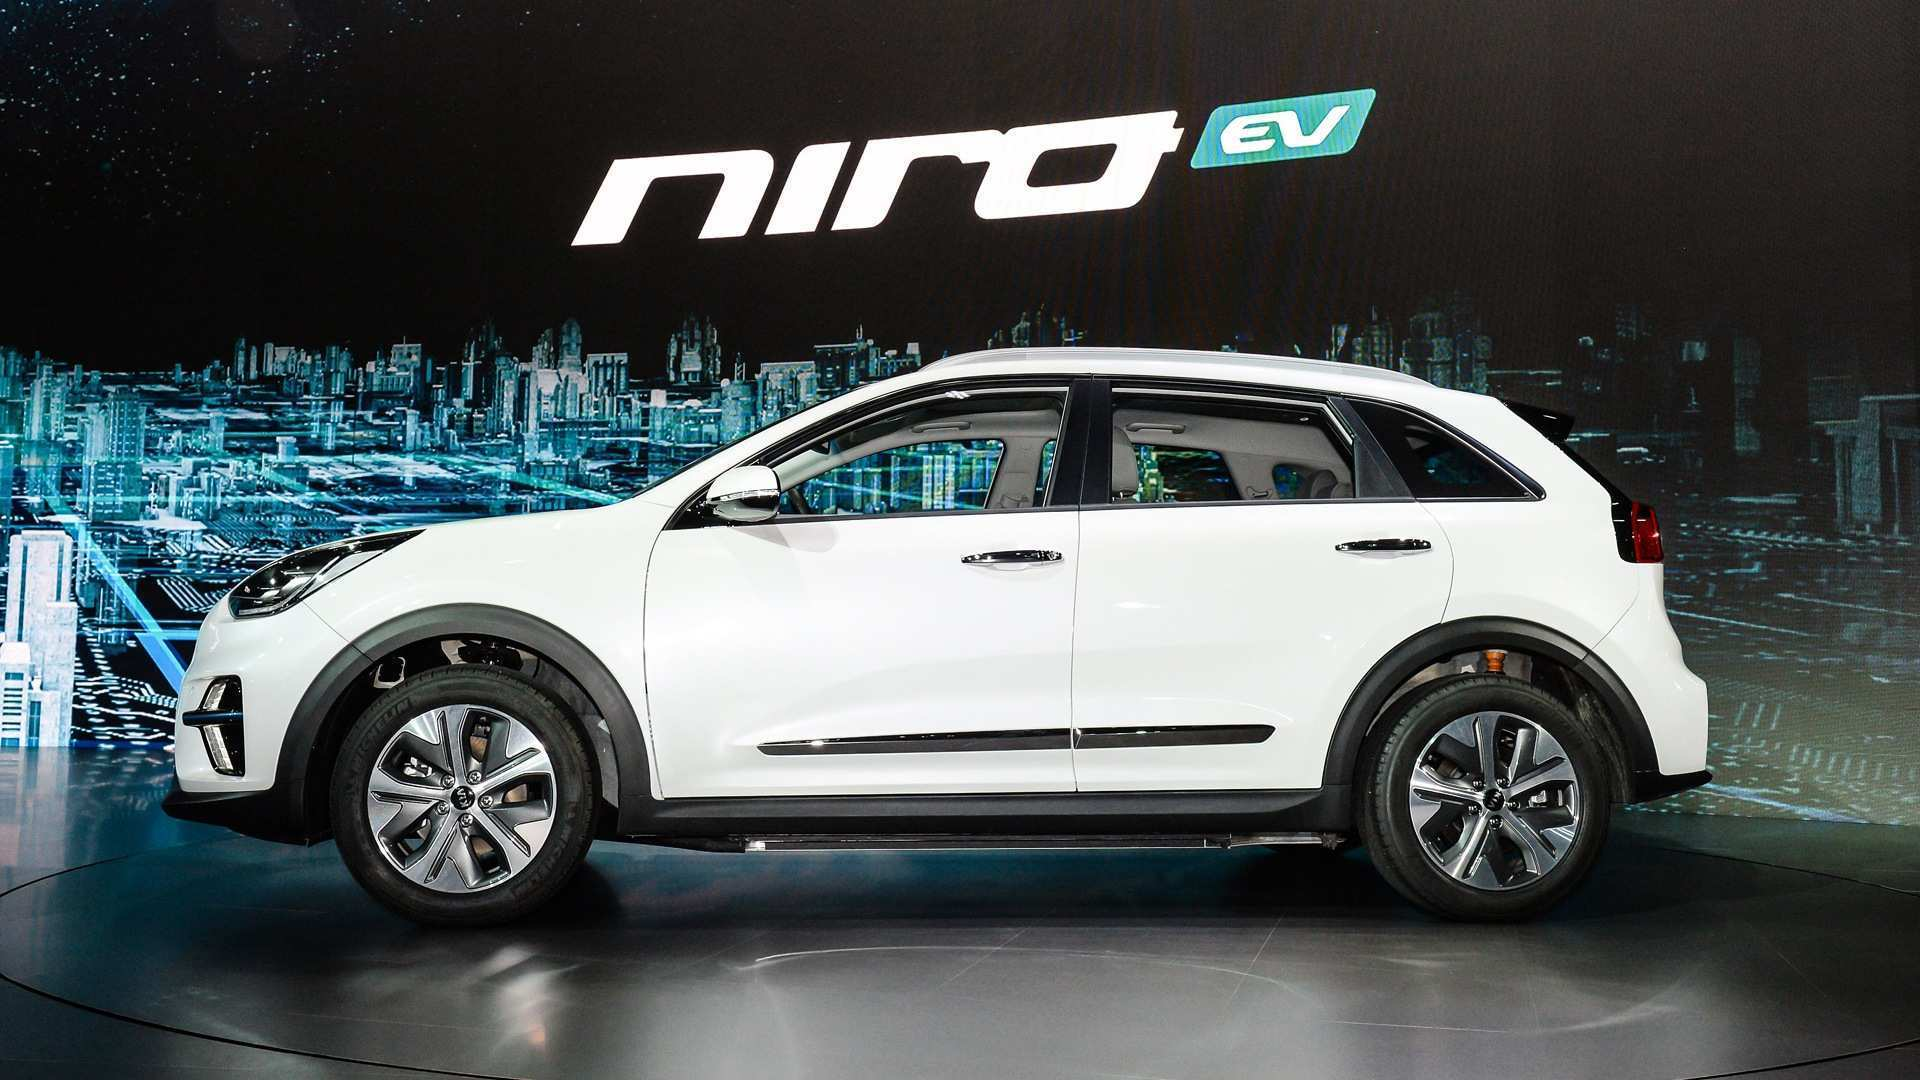 51 The Best 2019 Kia Niro Redesign And Review